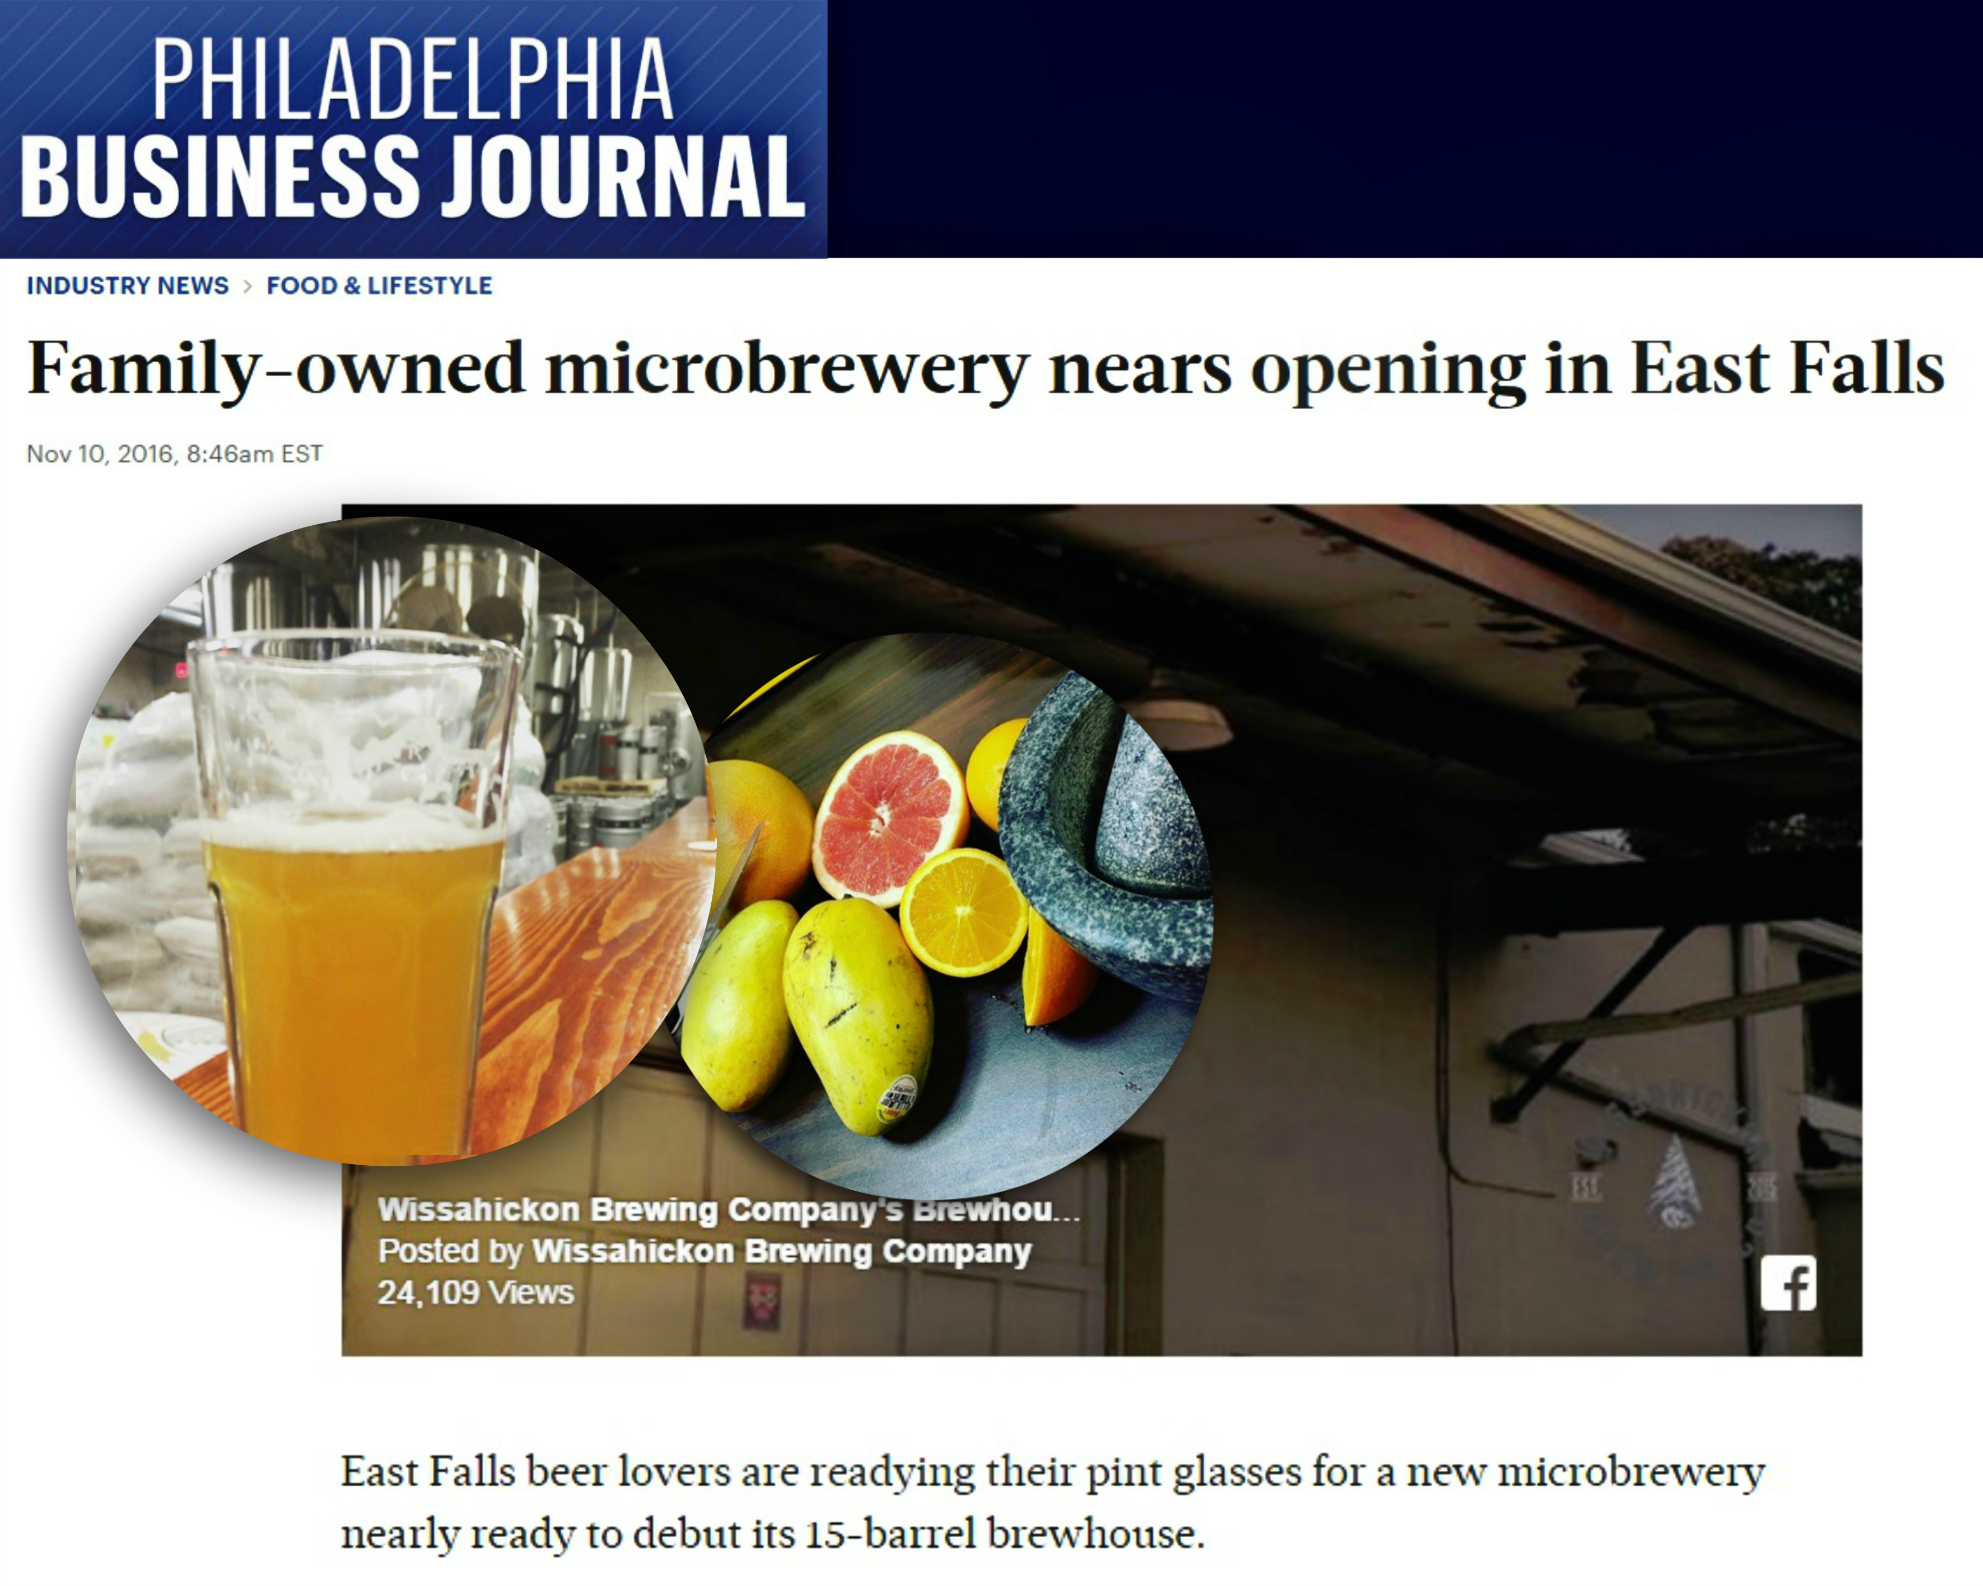 eastfallslocal-collage-tripel-citrus-drop-shadow-phila-biz-journal-headline-image